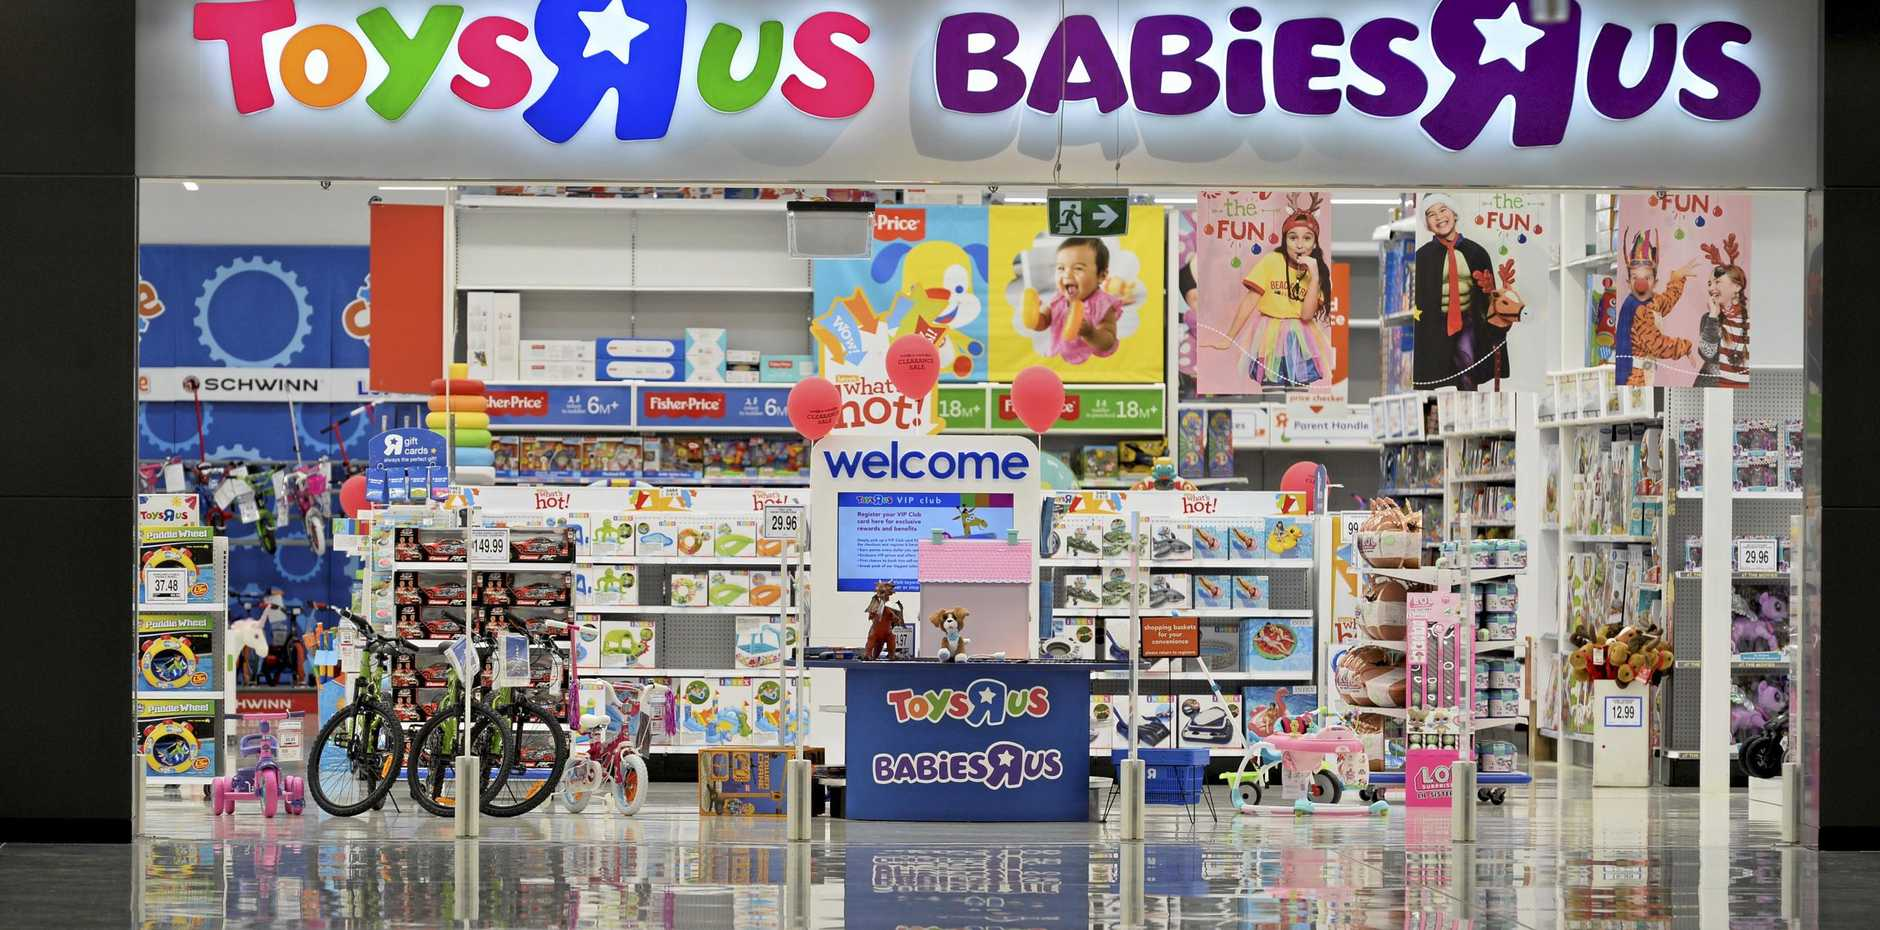 WE'RE FINE: Toys R Us and Babies R Us are urging business as usual.